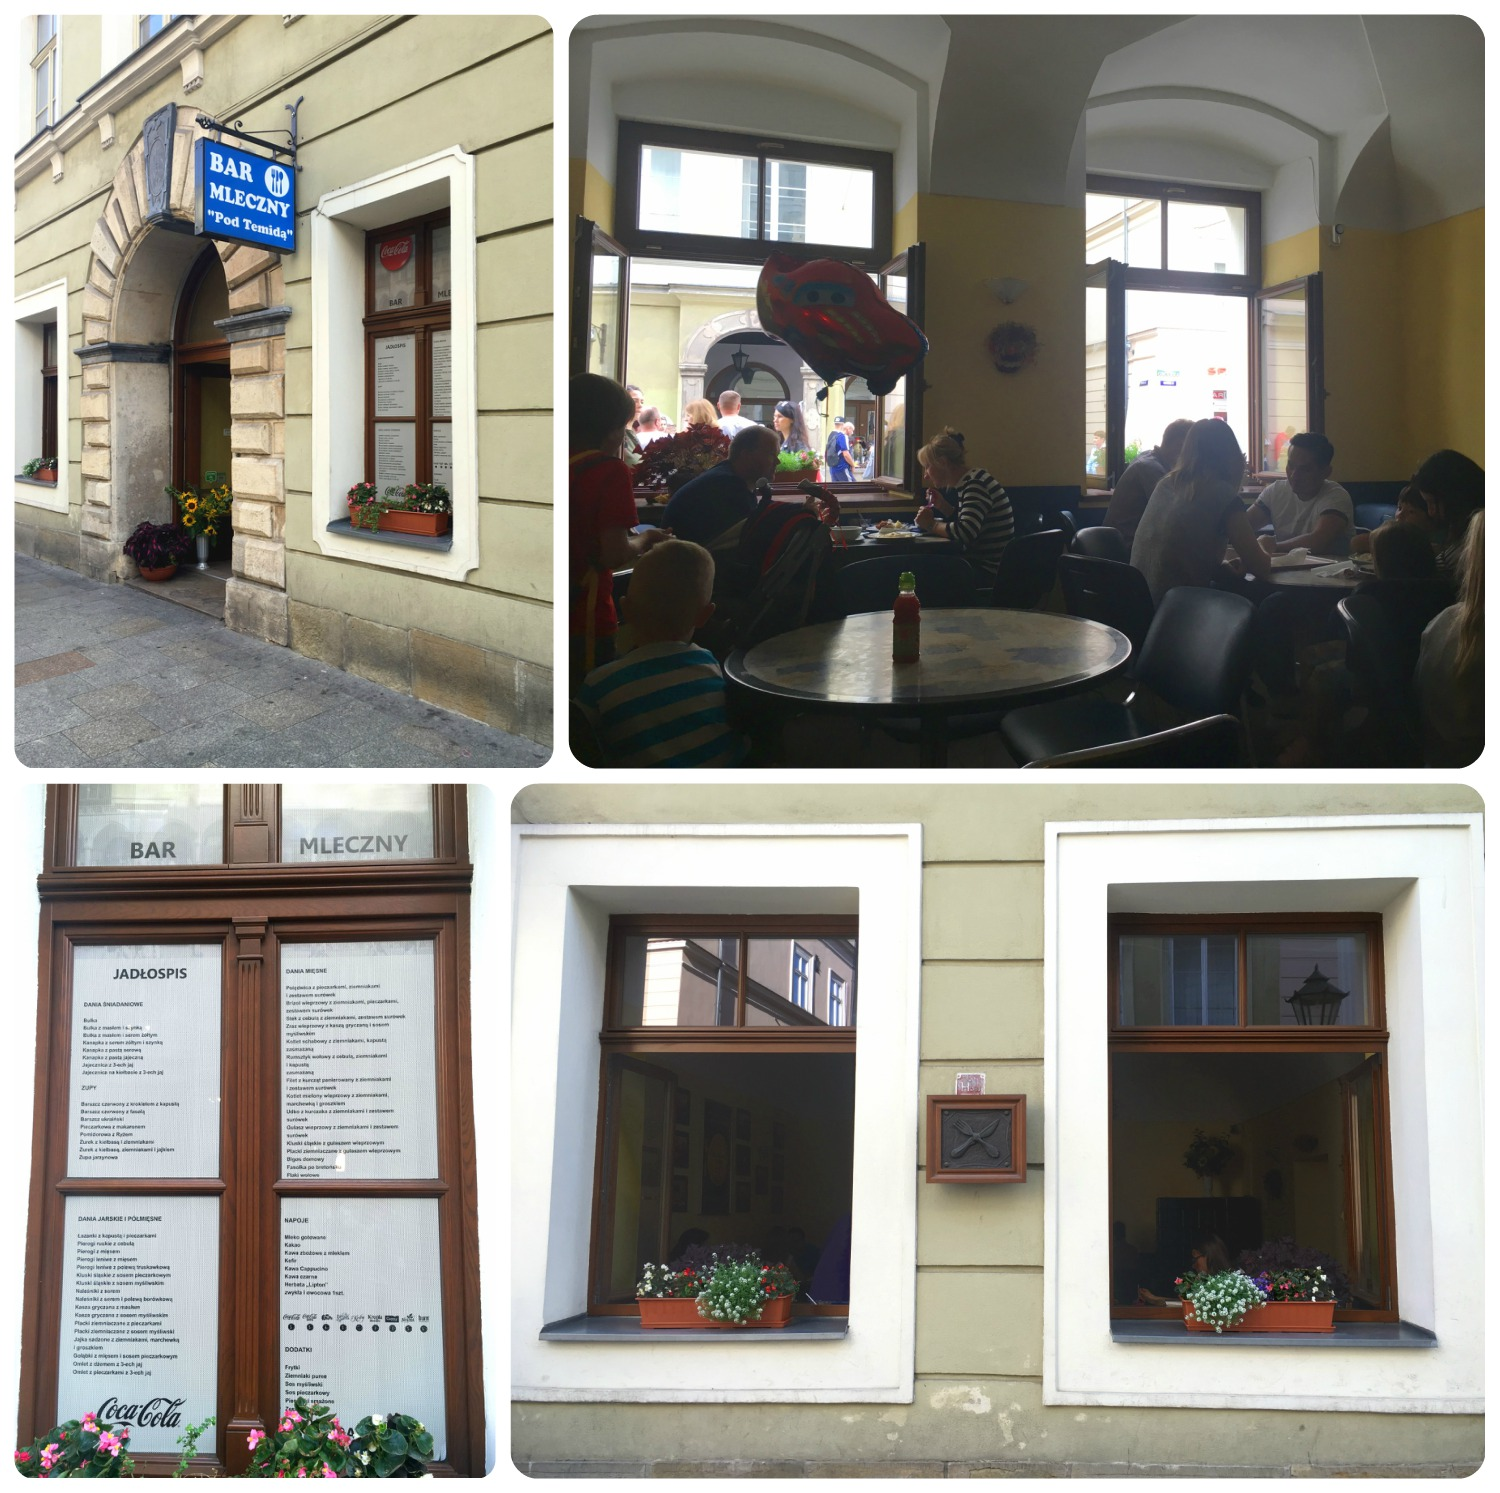 The exterior of Bar Mleczny 'Pod Temidą', as well as the inside seating space.